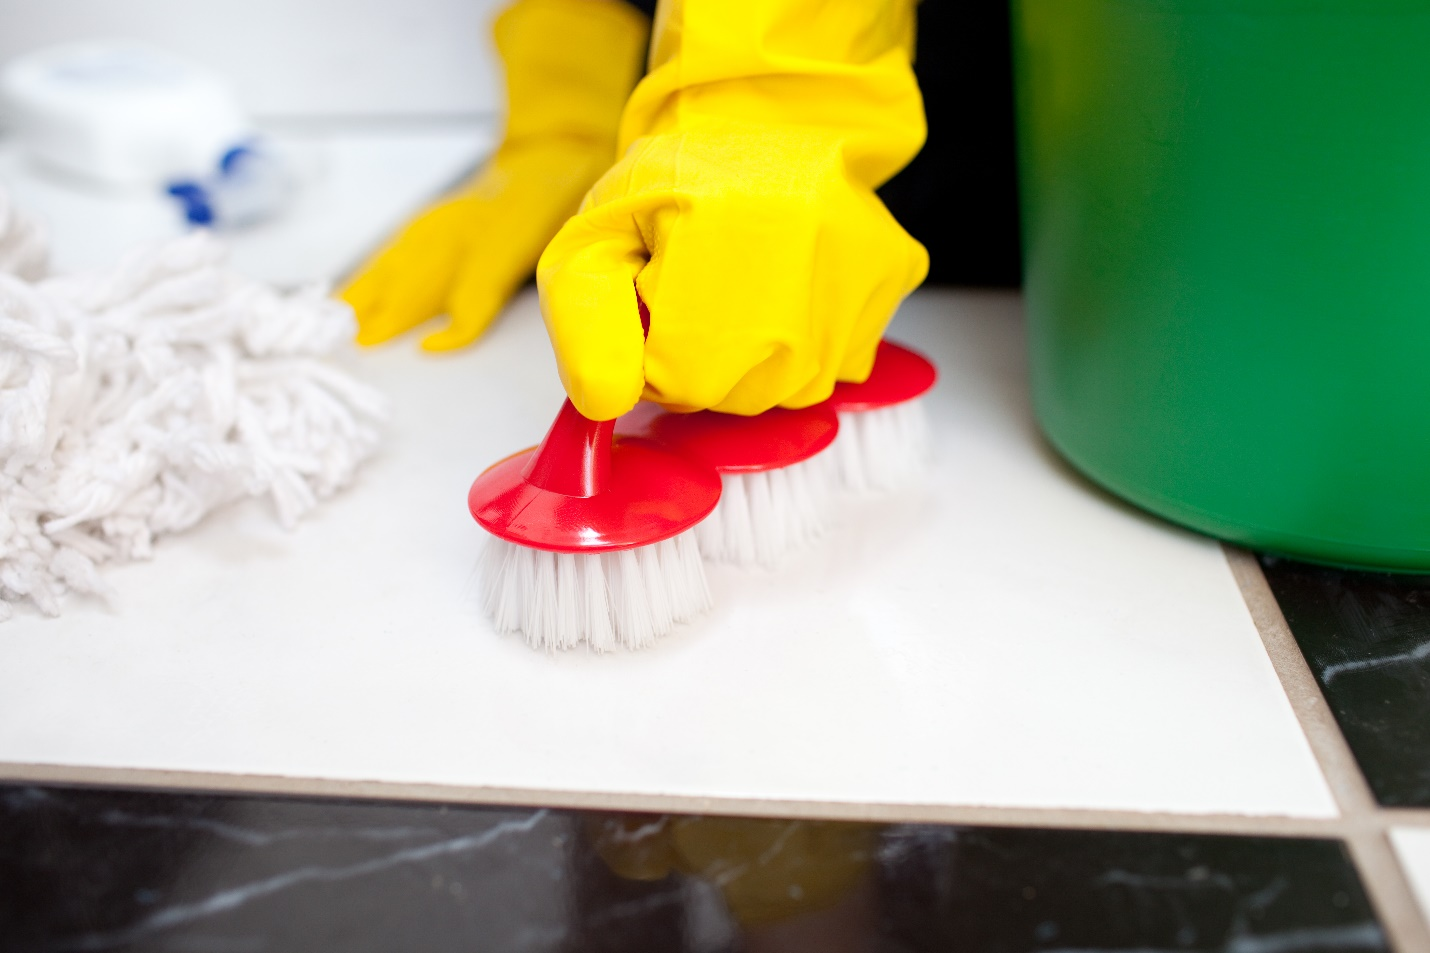 Janitorial cleaning and scrubbing with a brush